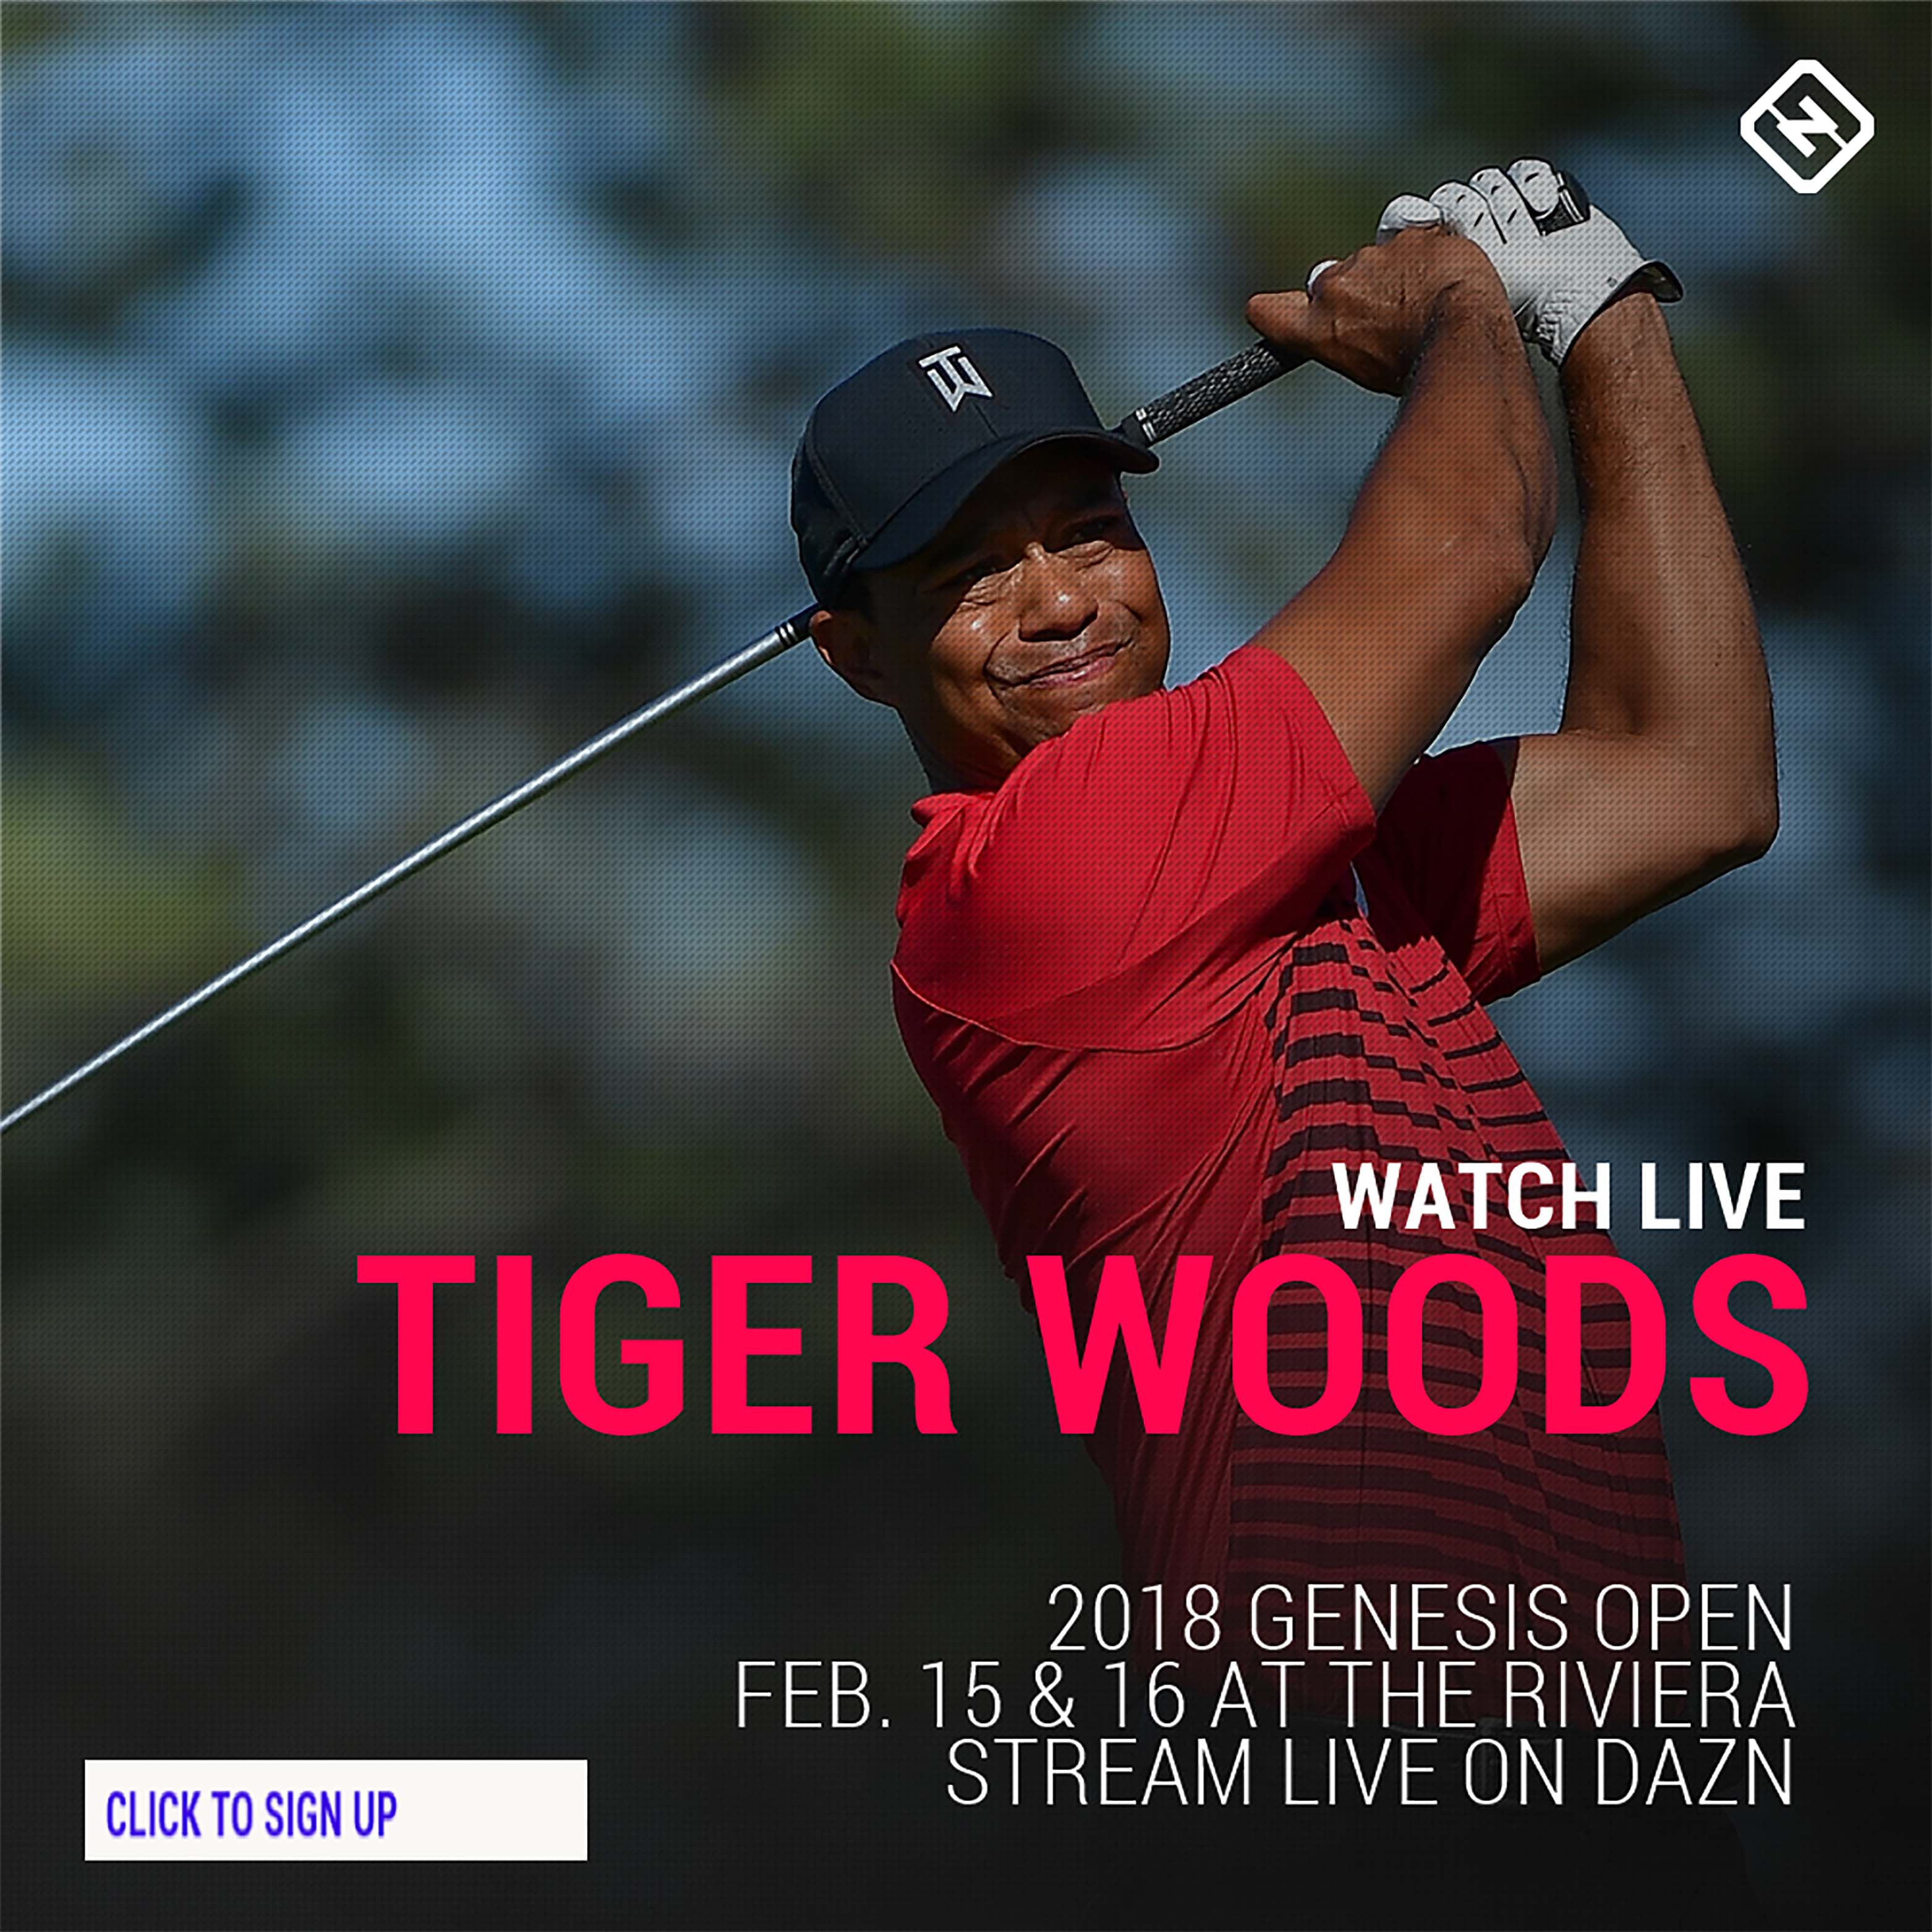 Tiger Woods promo graphic